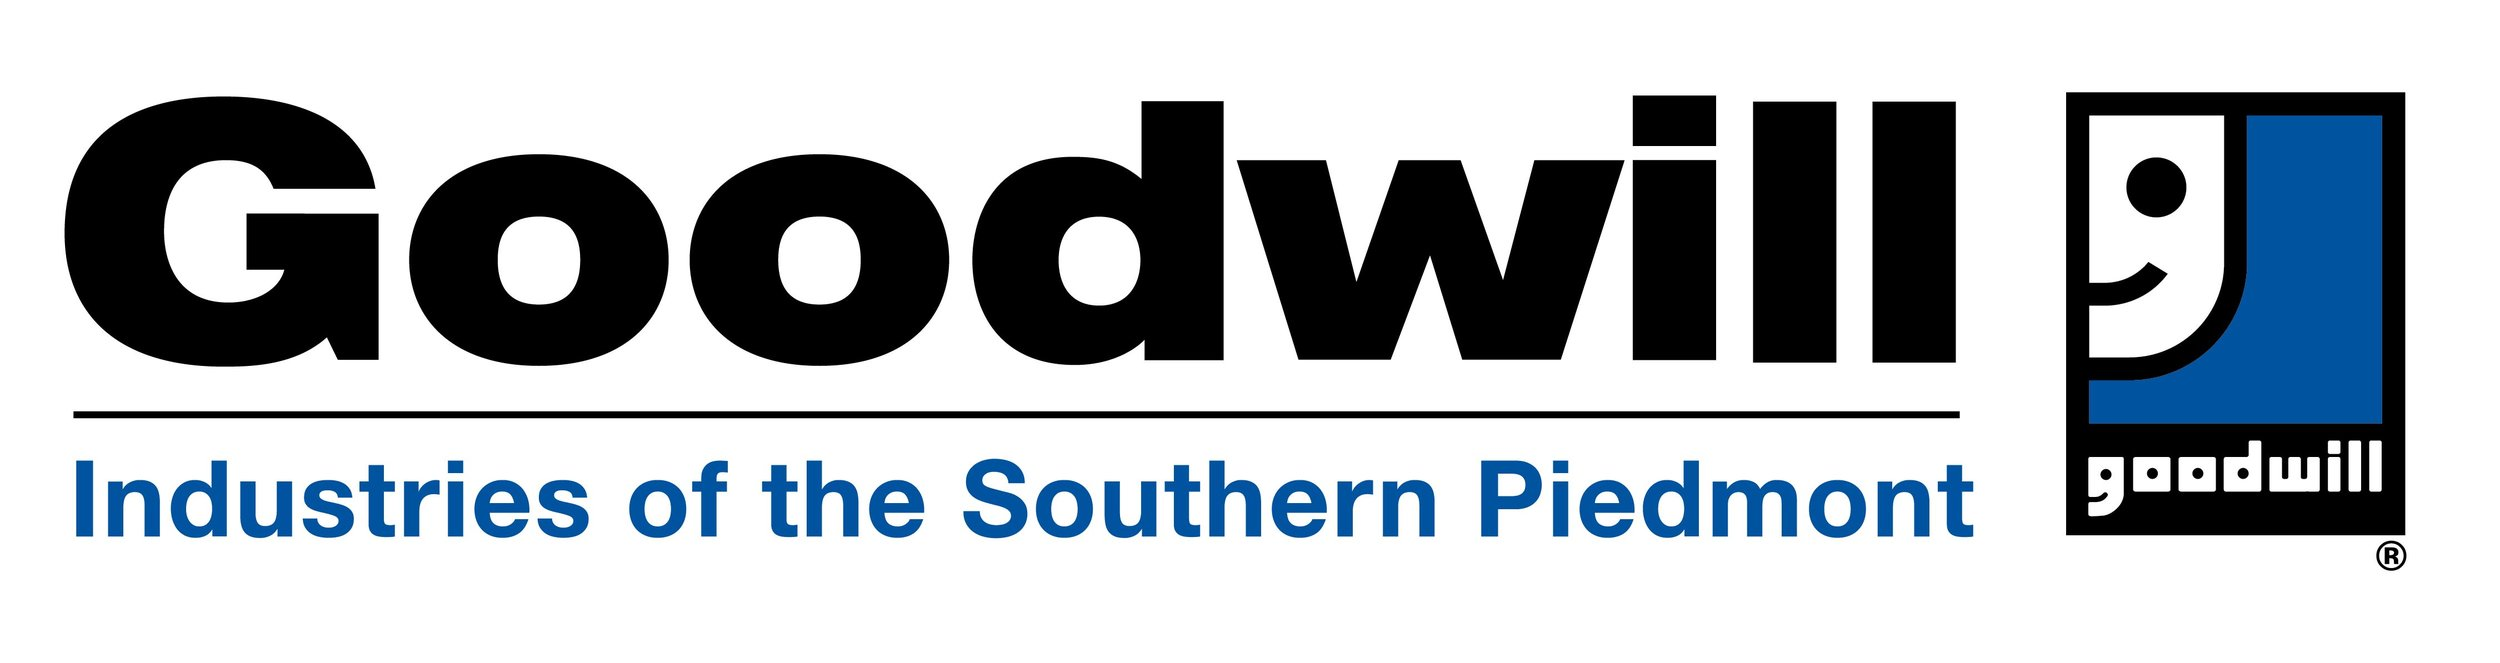 Goodwill-Industries-of-the-Southern-Piedmont-Logo.jpg